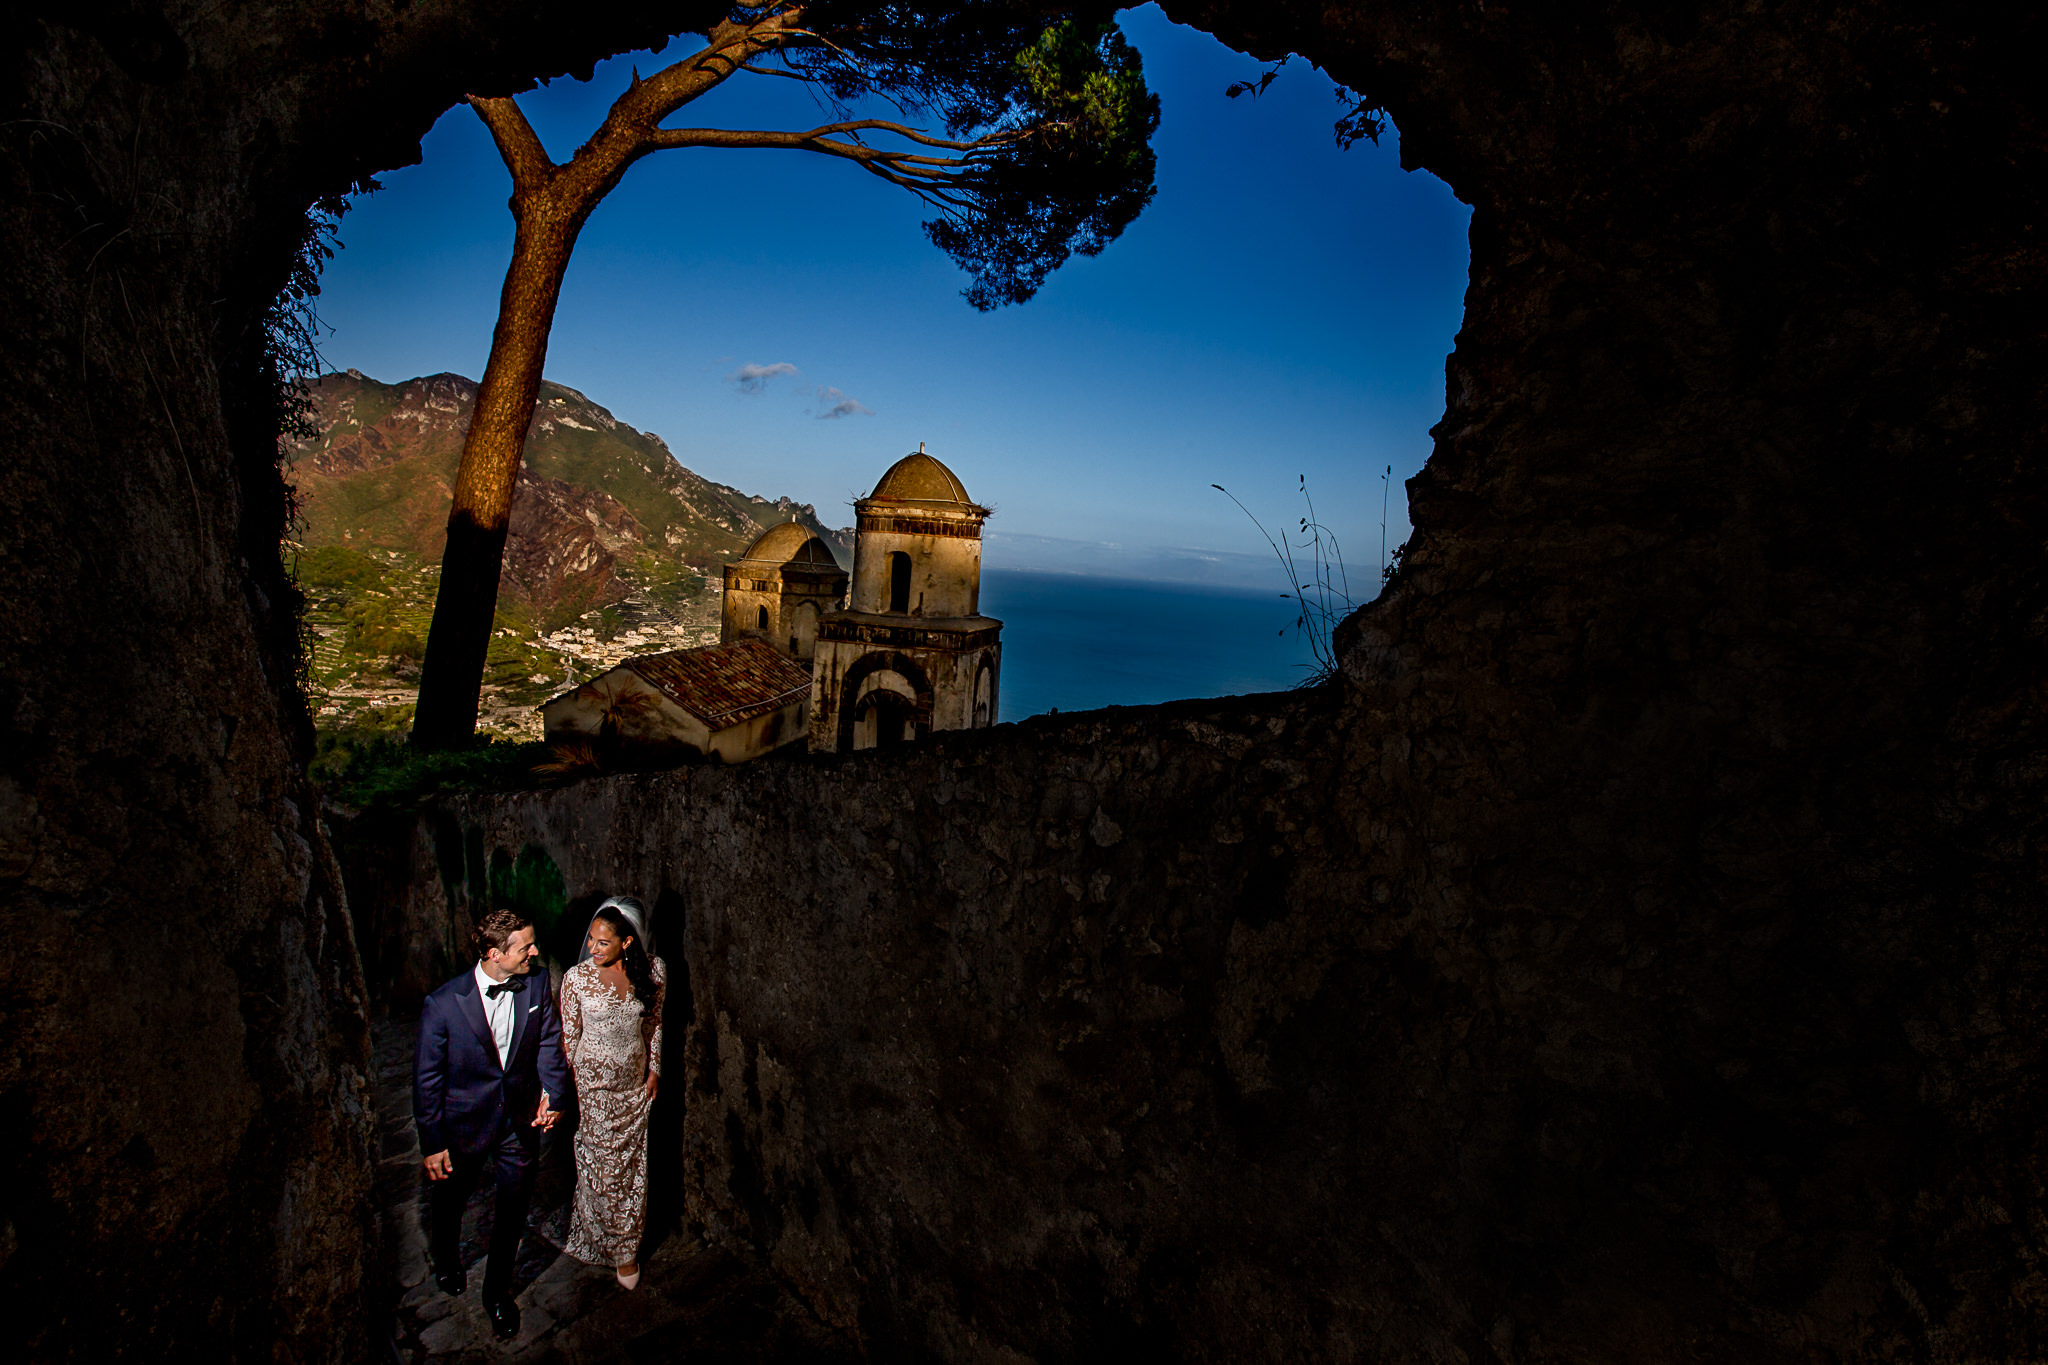 Bride and Groom walking in Ravello Italy overlooking Amalfi coast on wedding day